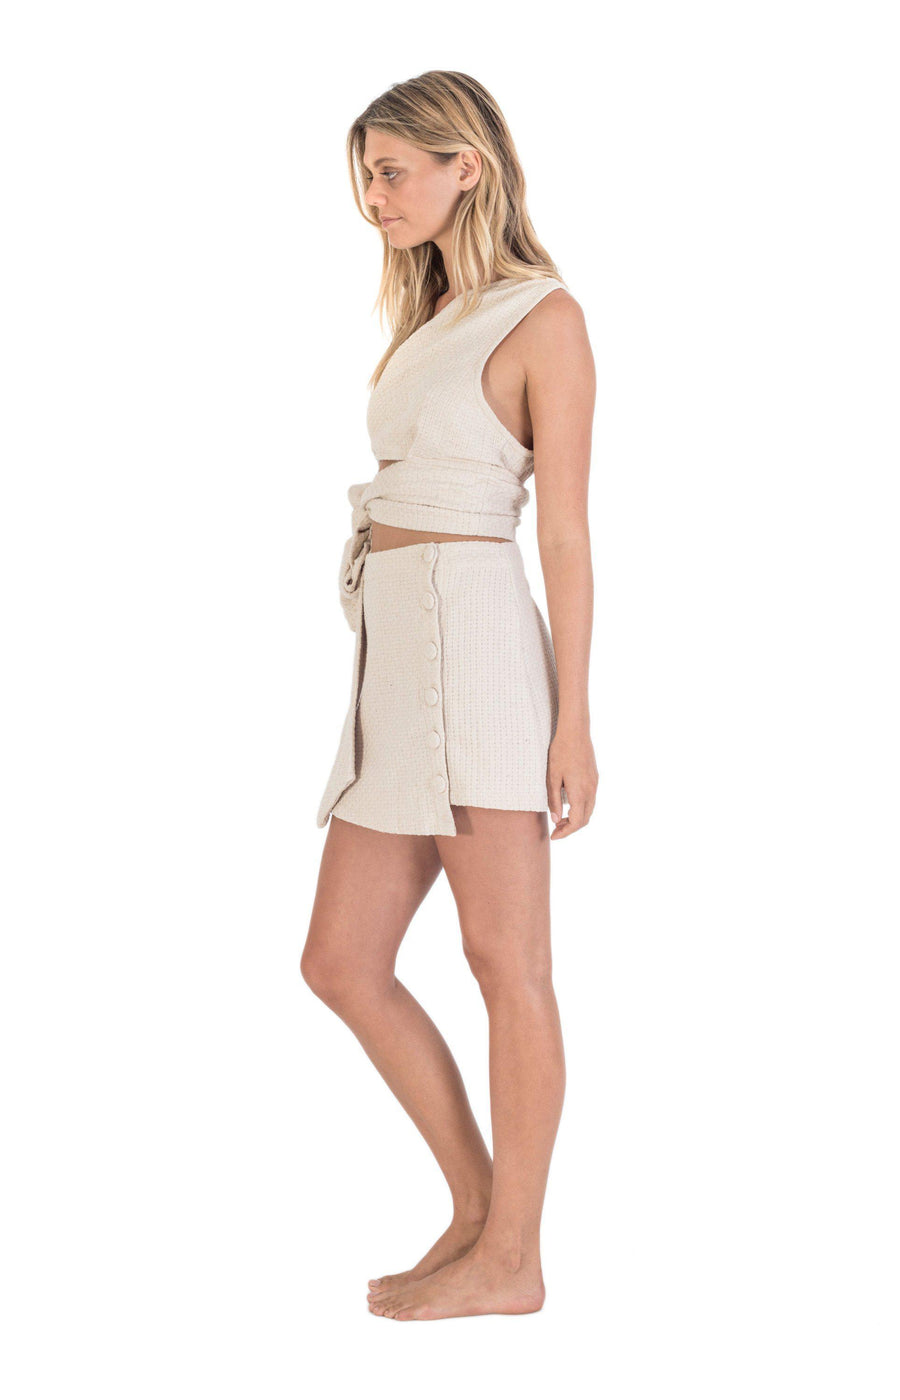 The Bare Road Wild One Shoulder Top Natural Beige